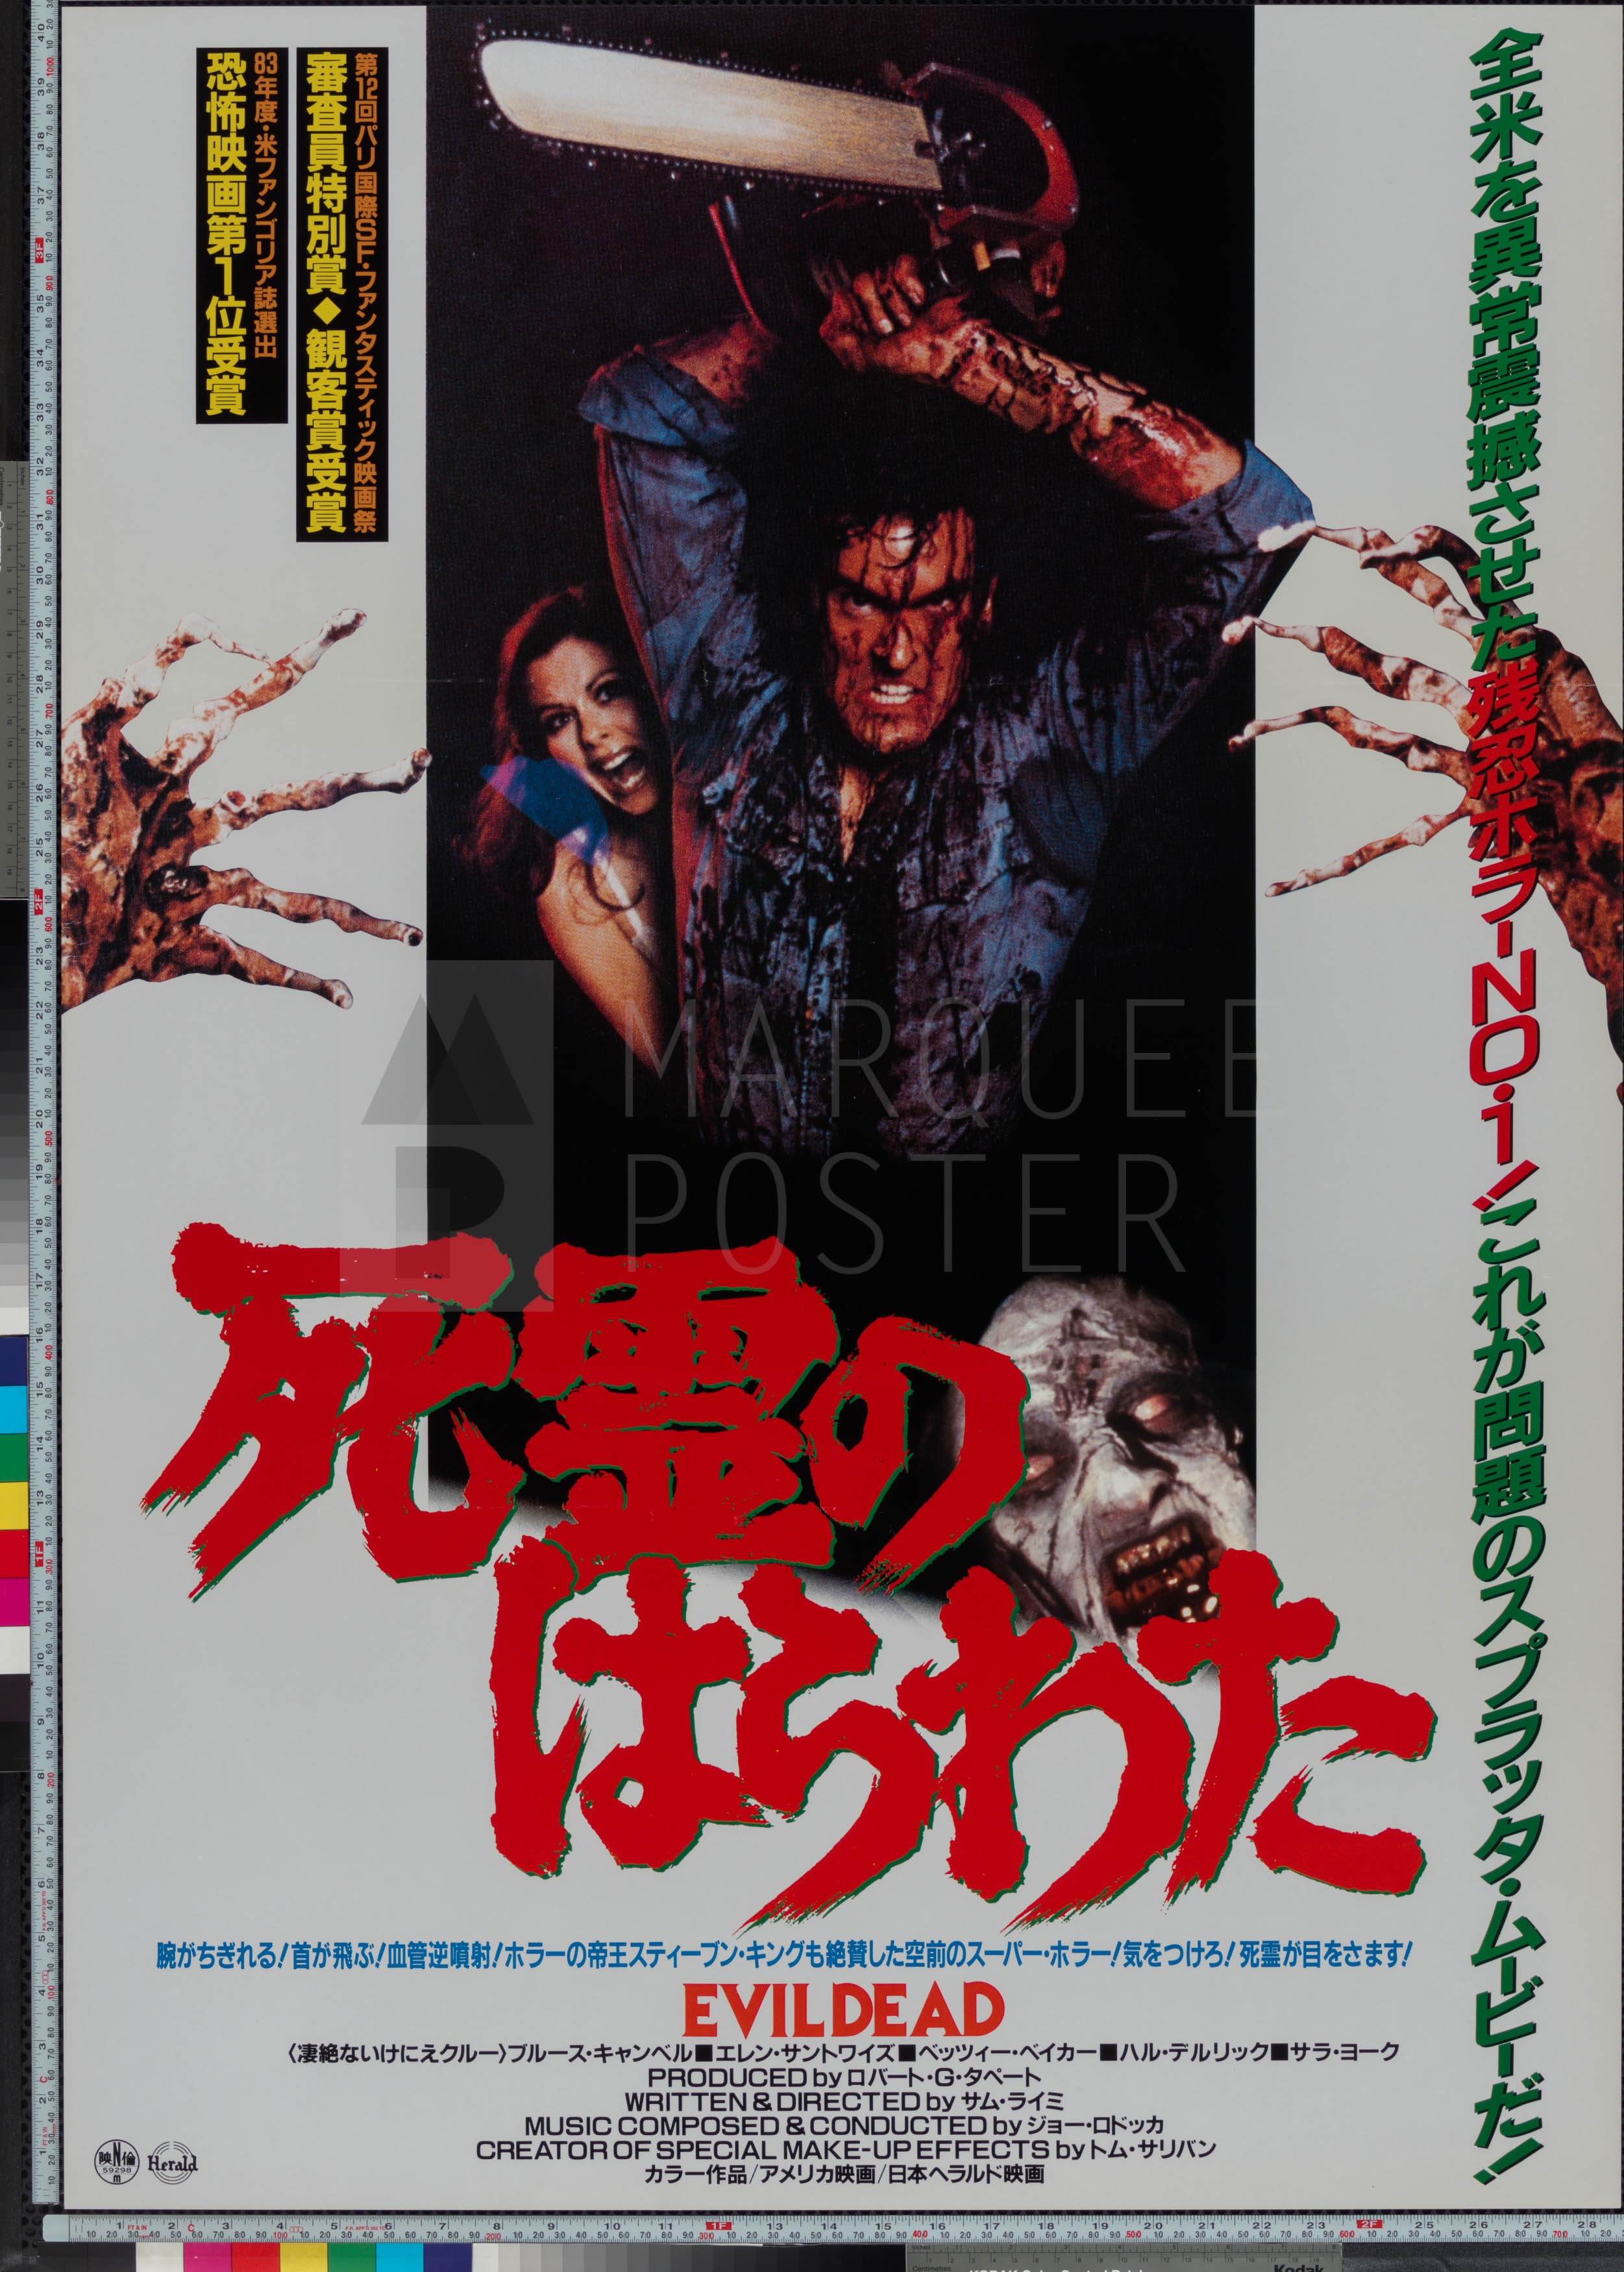 20-evil-dead-chainsaw-style-japanese-b1-1985-02